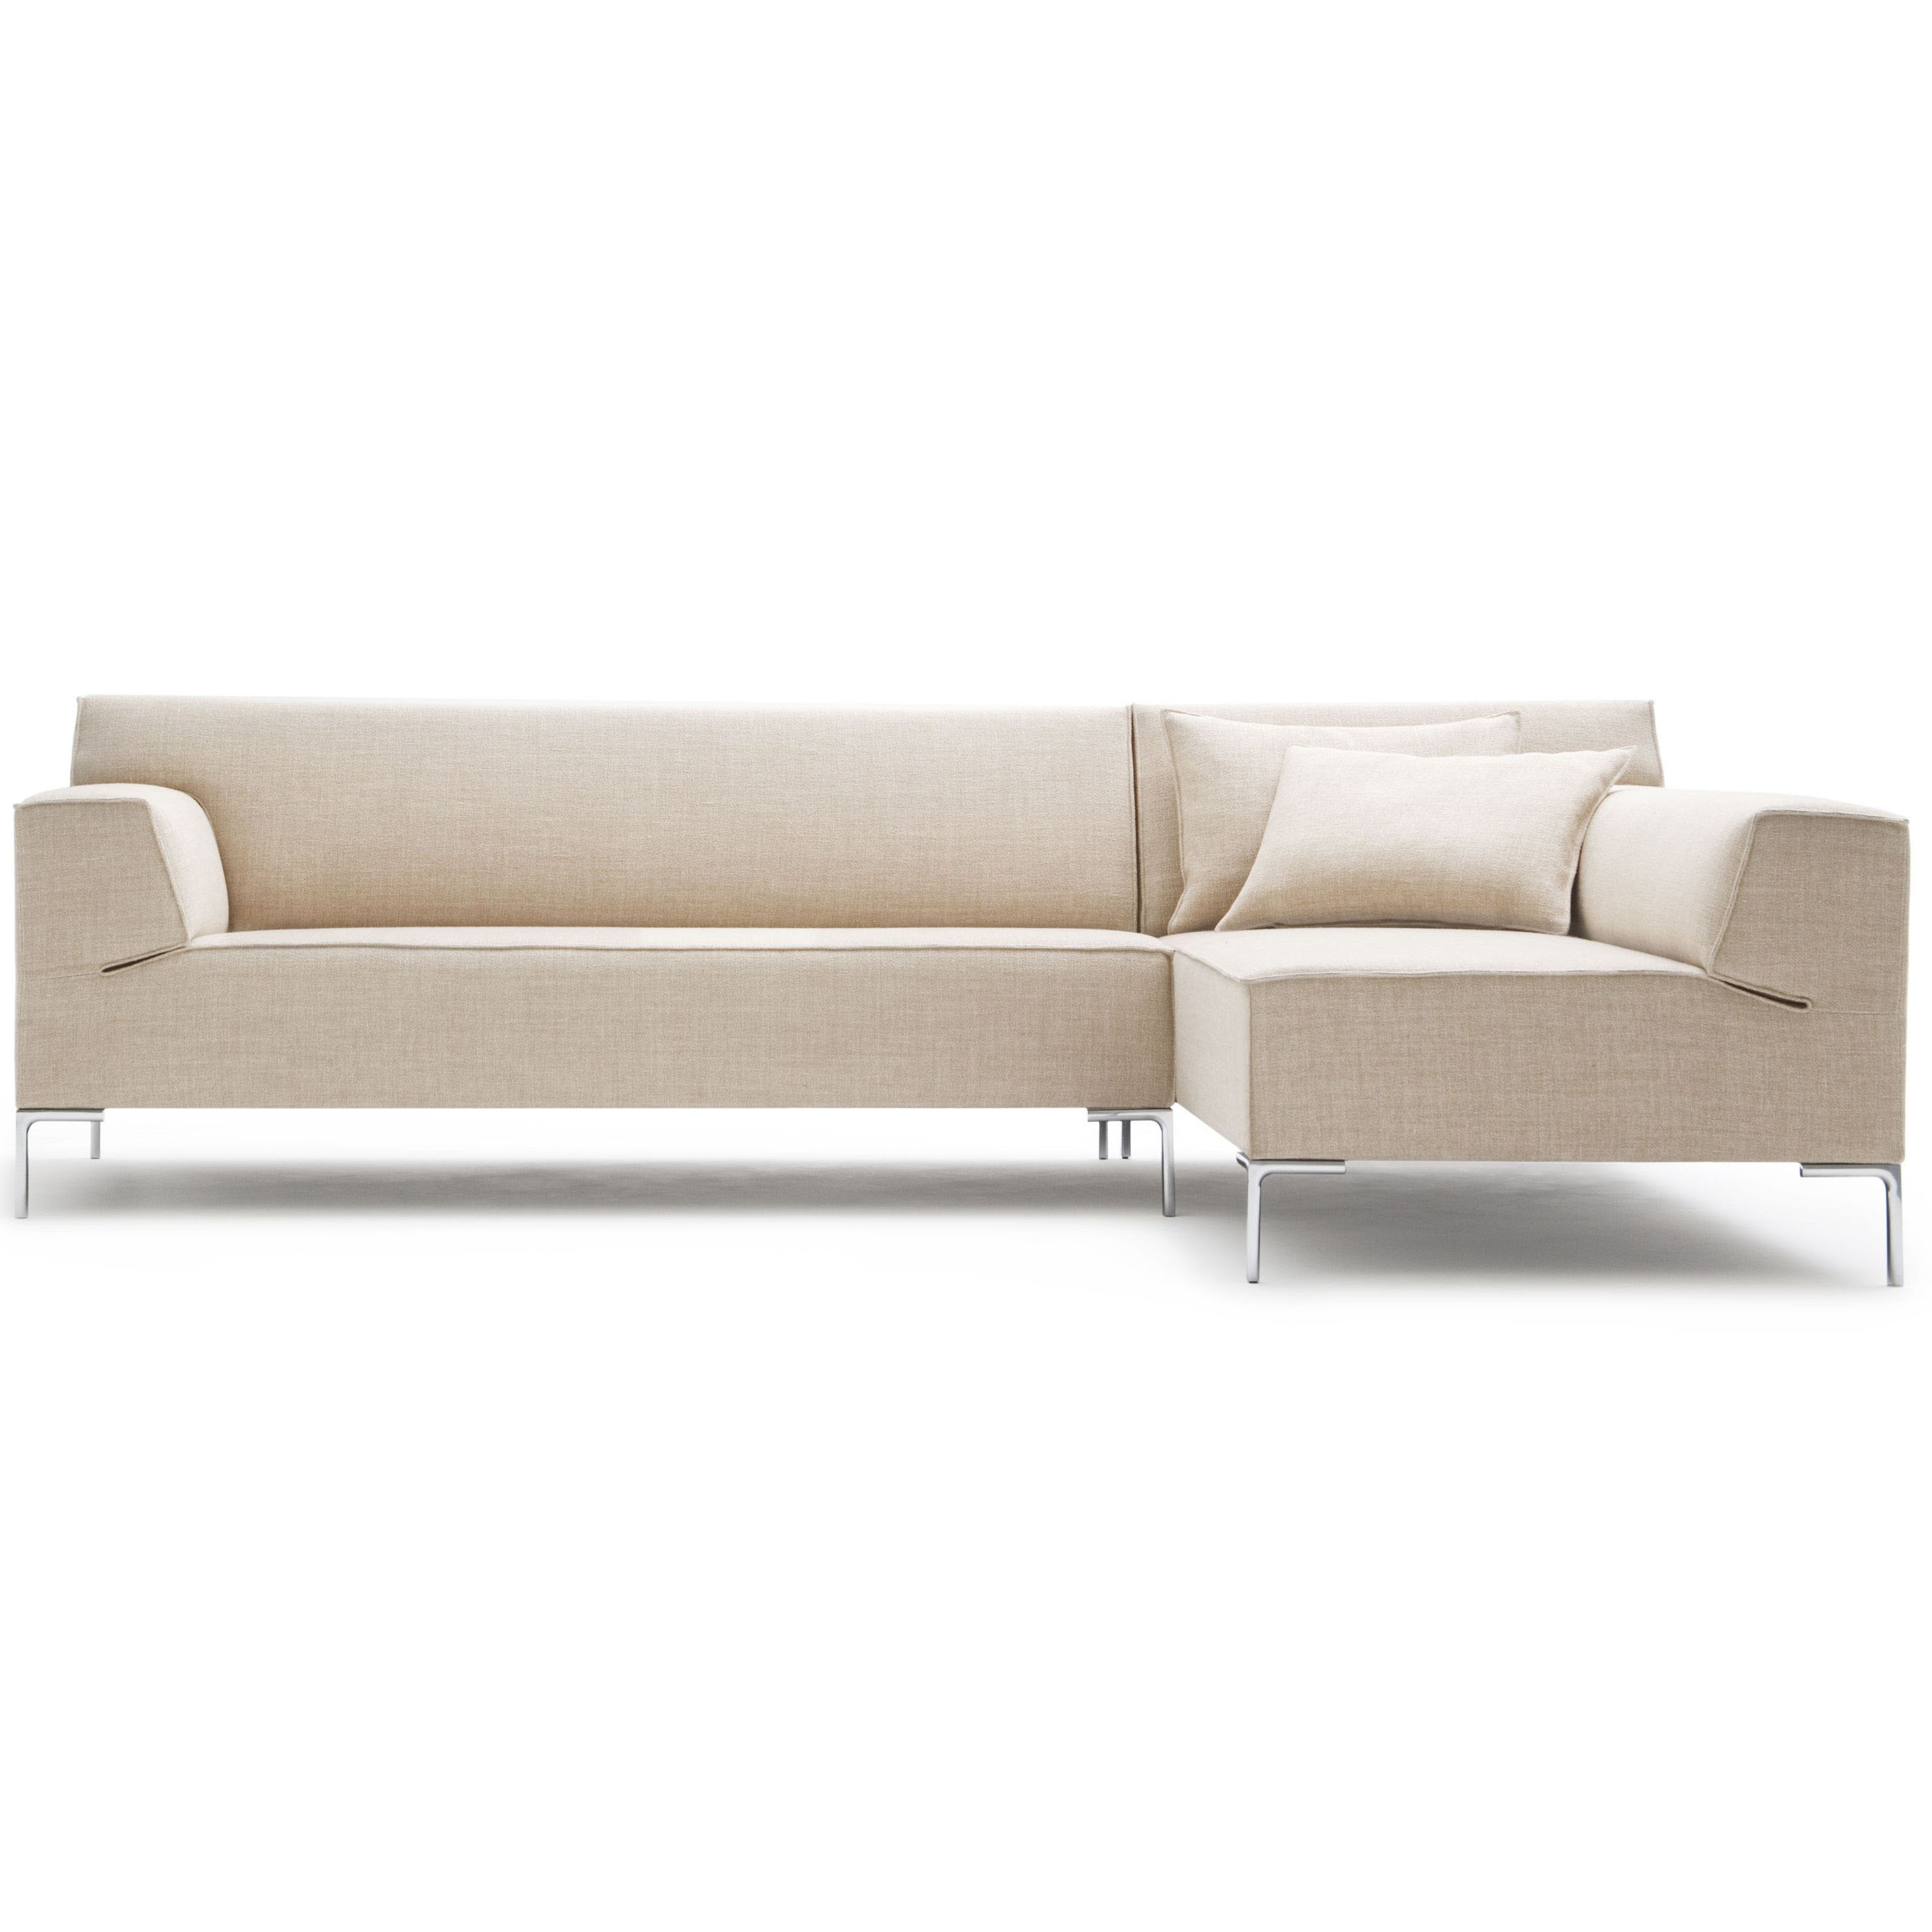 Design Bank 3 Zits.Design On Stock Bloq Bank 3 Zits 1 Arm Chaise Longue